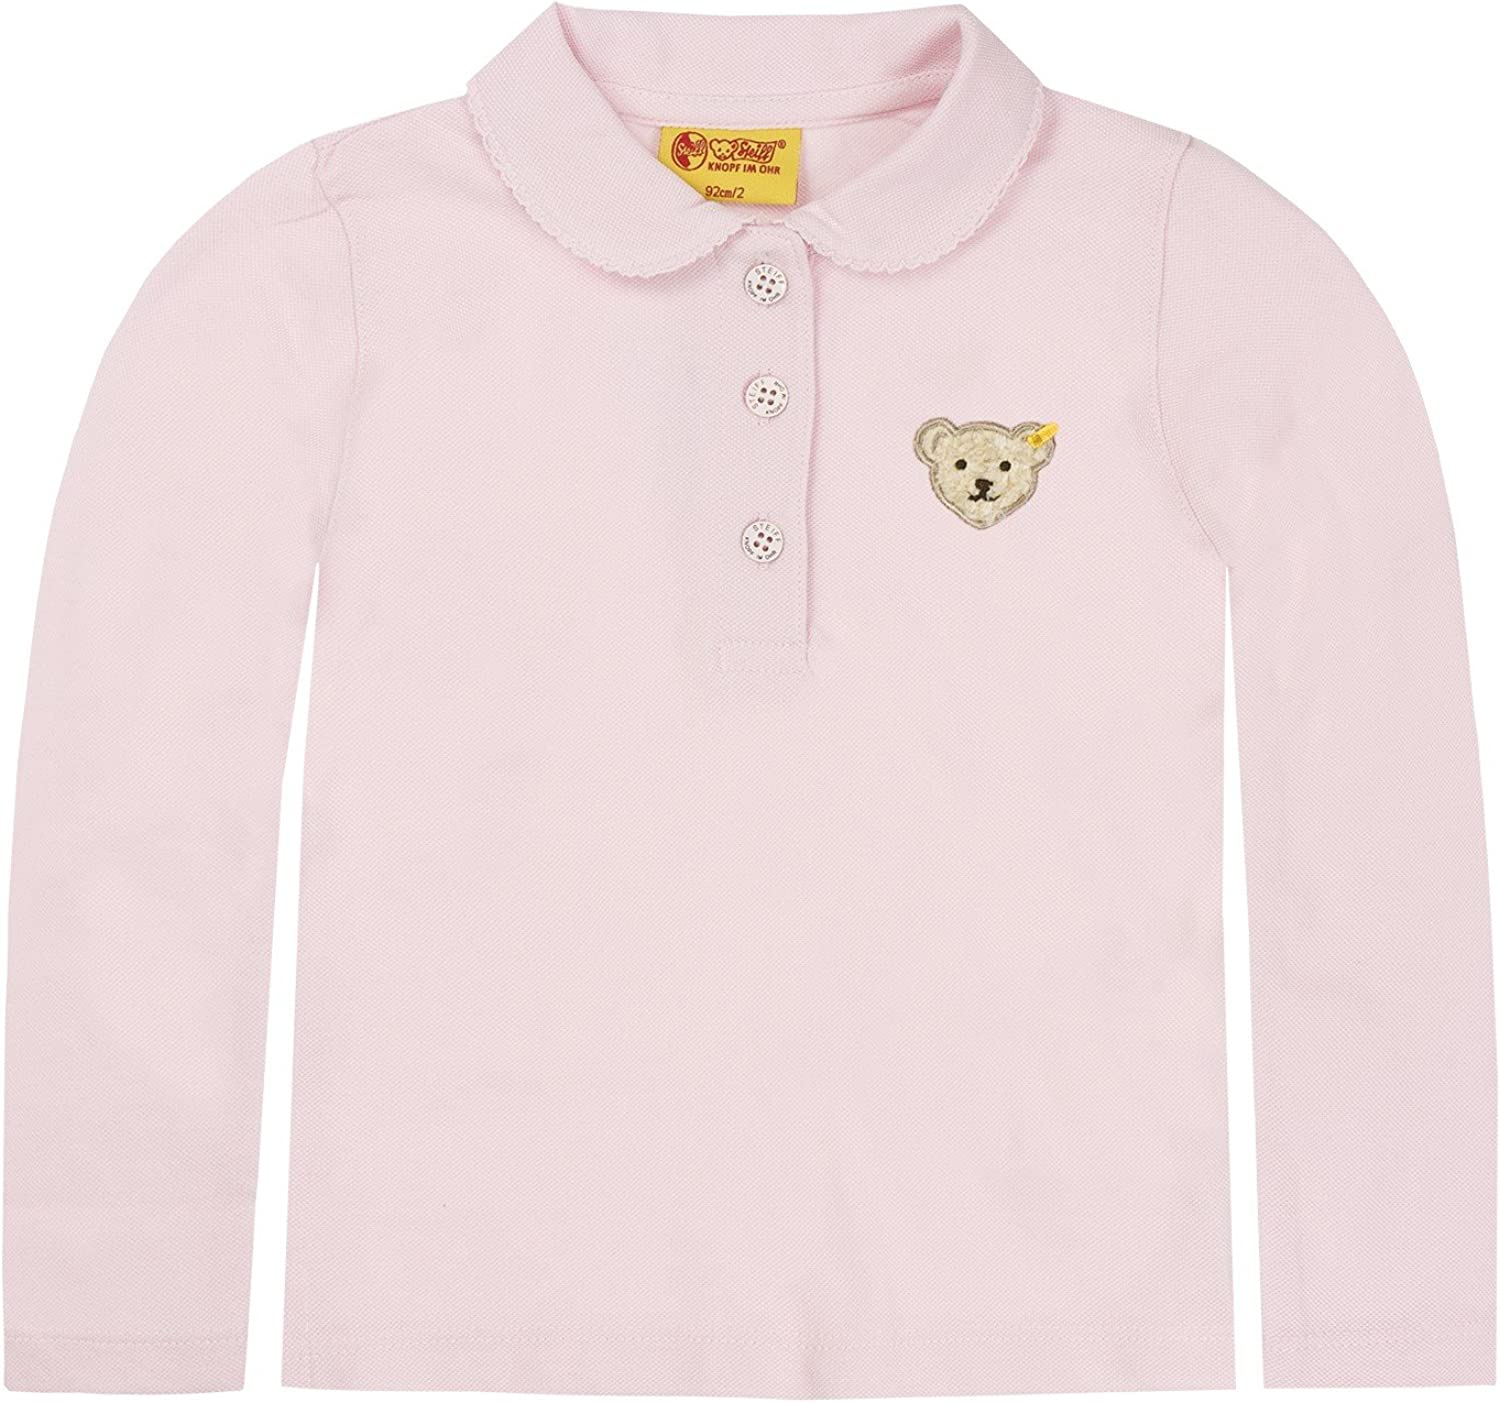 Polo Bambino Steiff 0006893 Shirt 1//1 Sleeves